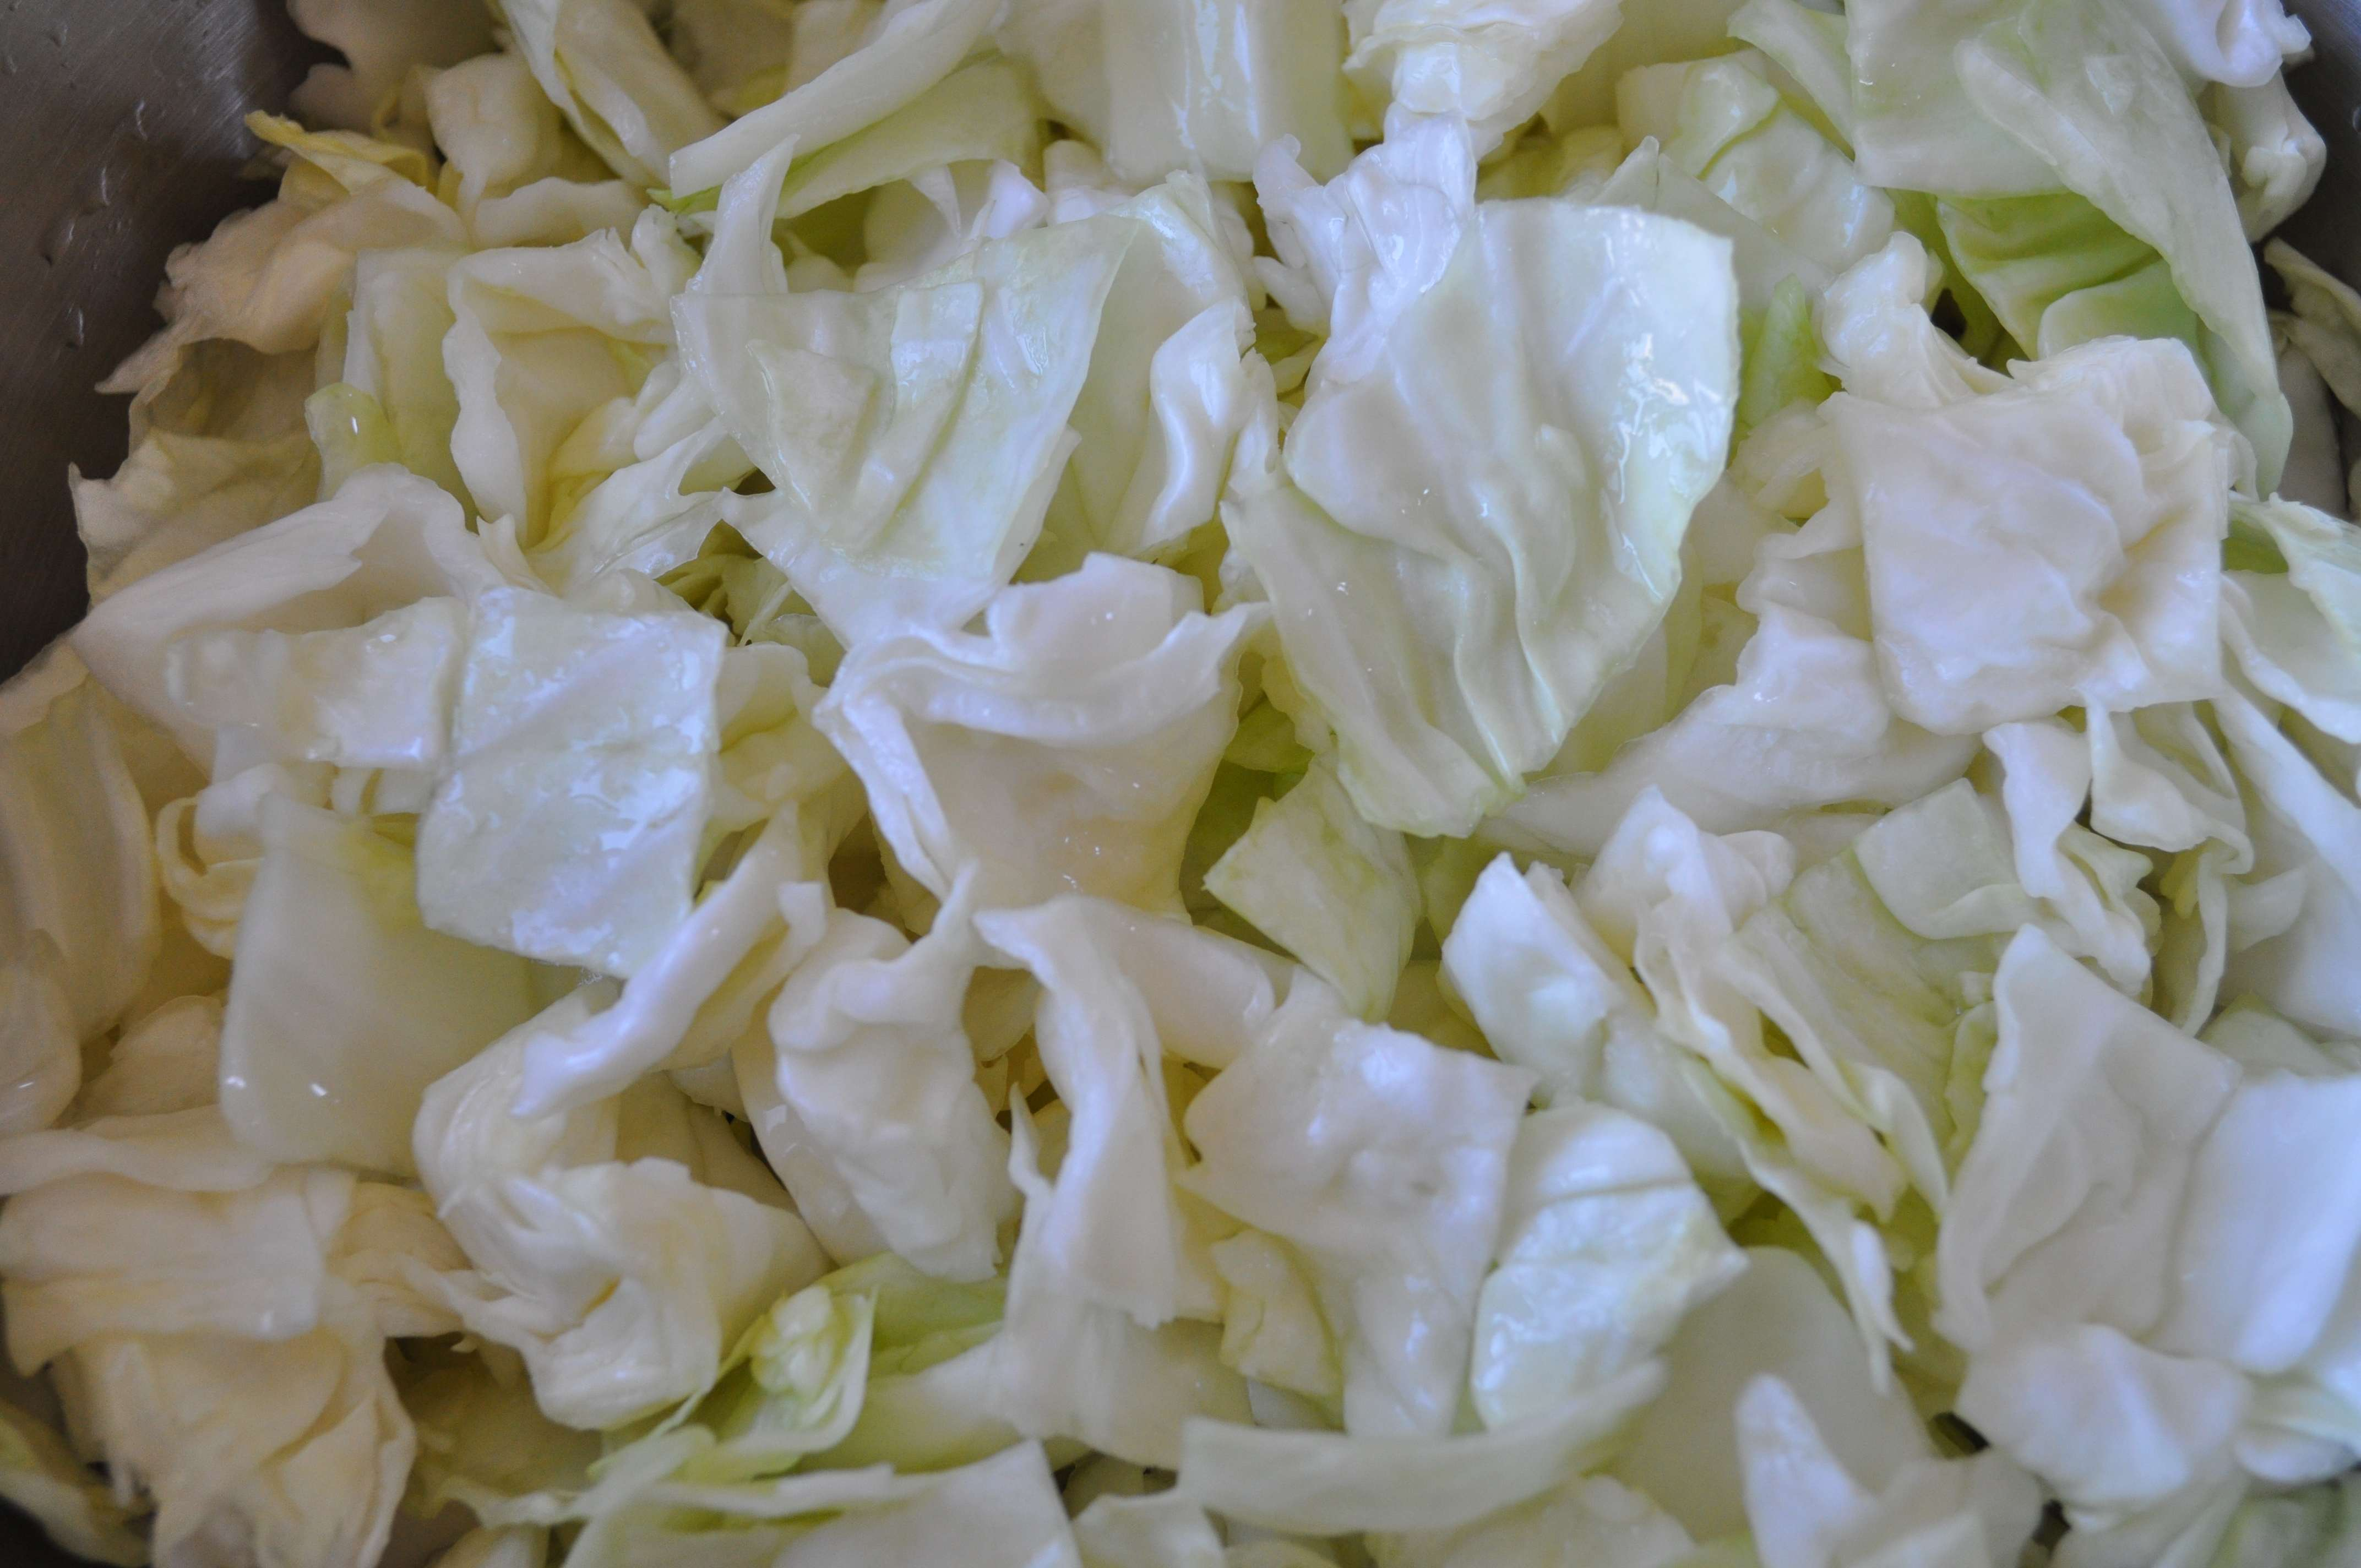 cabbage in salt water